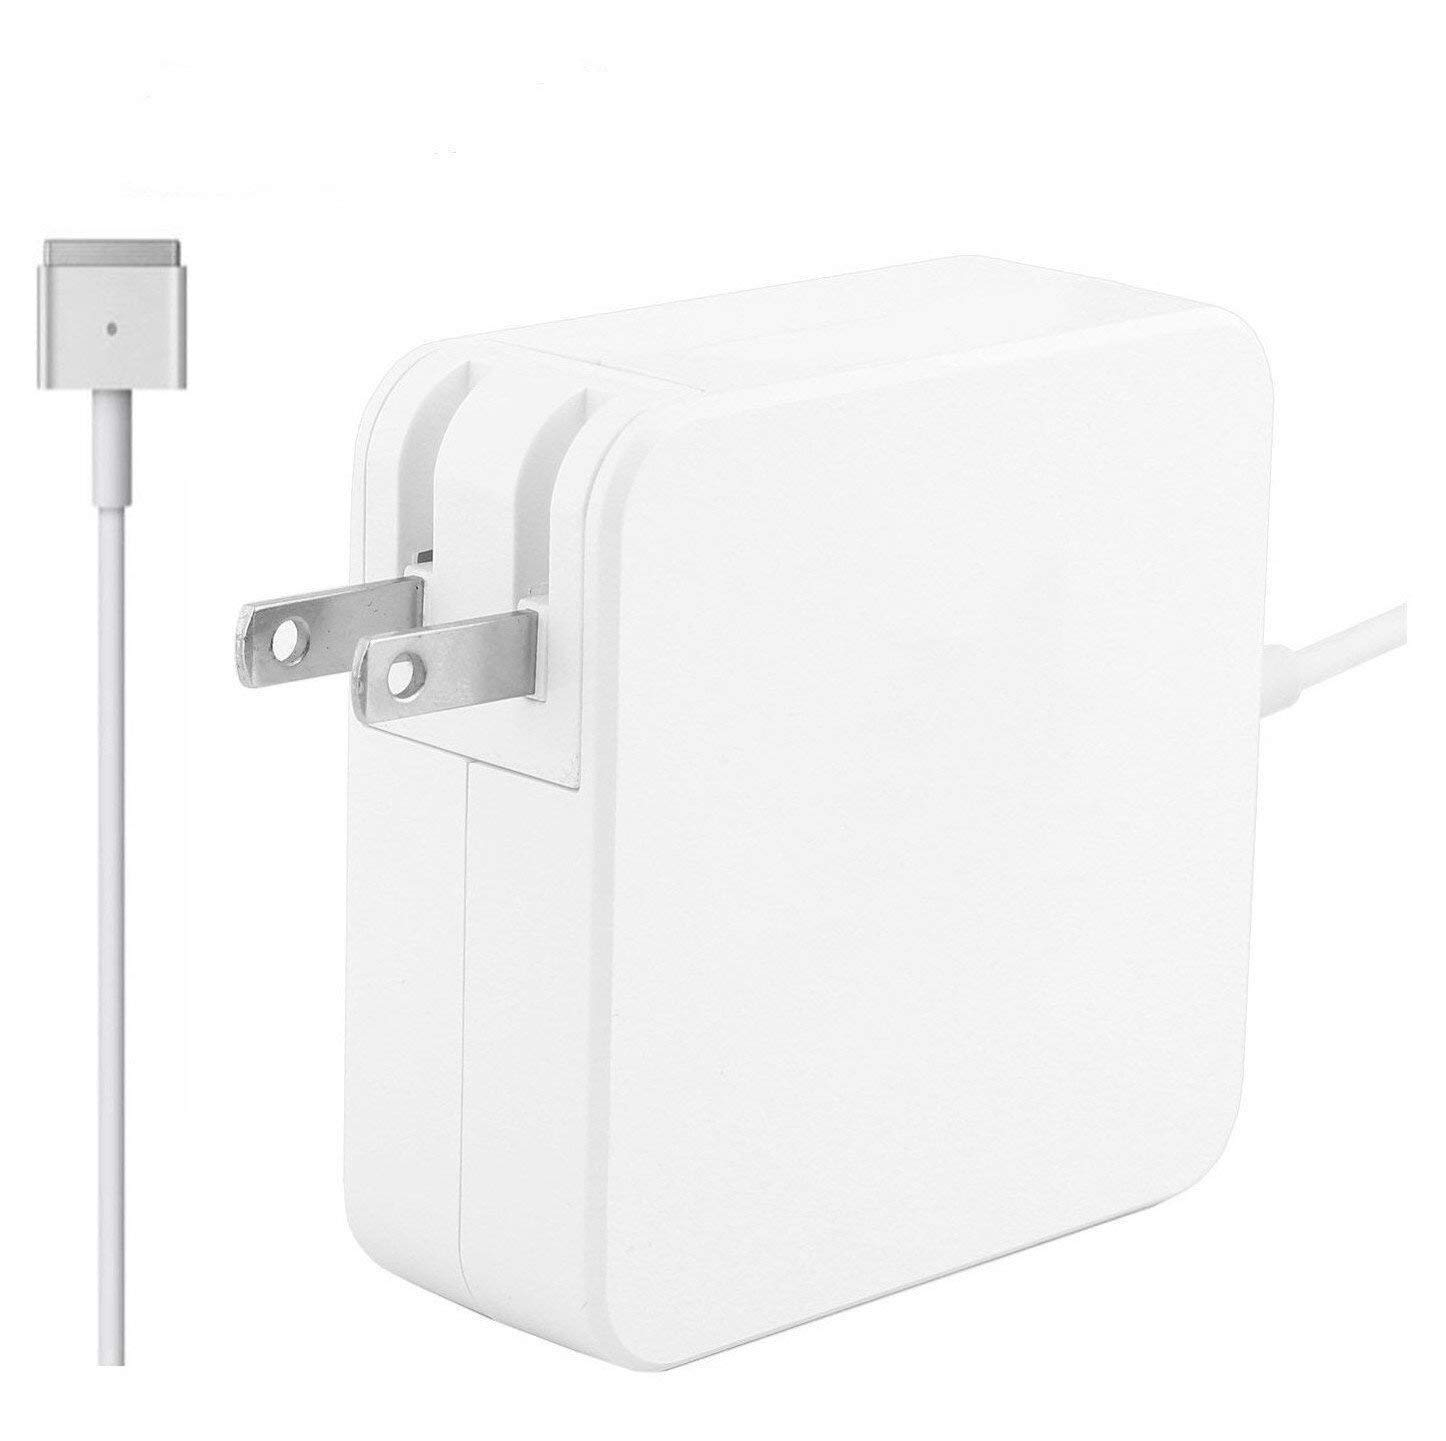 KUPPET MacBook Pro Charger 85W MacBook Charger with T-Tip,85W Charger Power Adapter for MacBook Pro/Air 13 Inch/ 15 inch/ 17inch.Compatible with All MacBooks Produced After mid 2012.